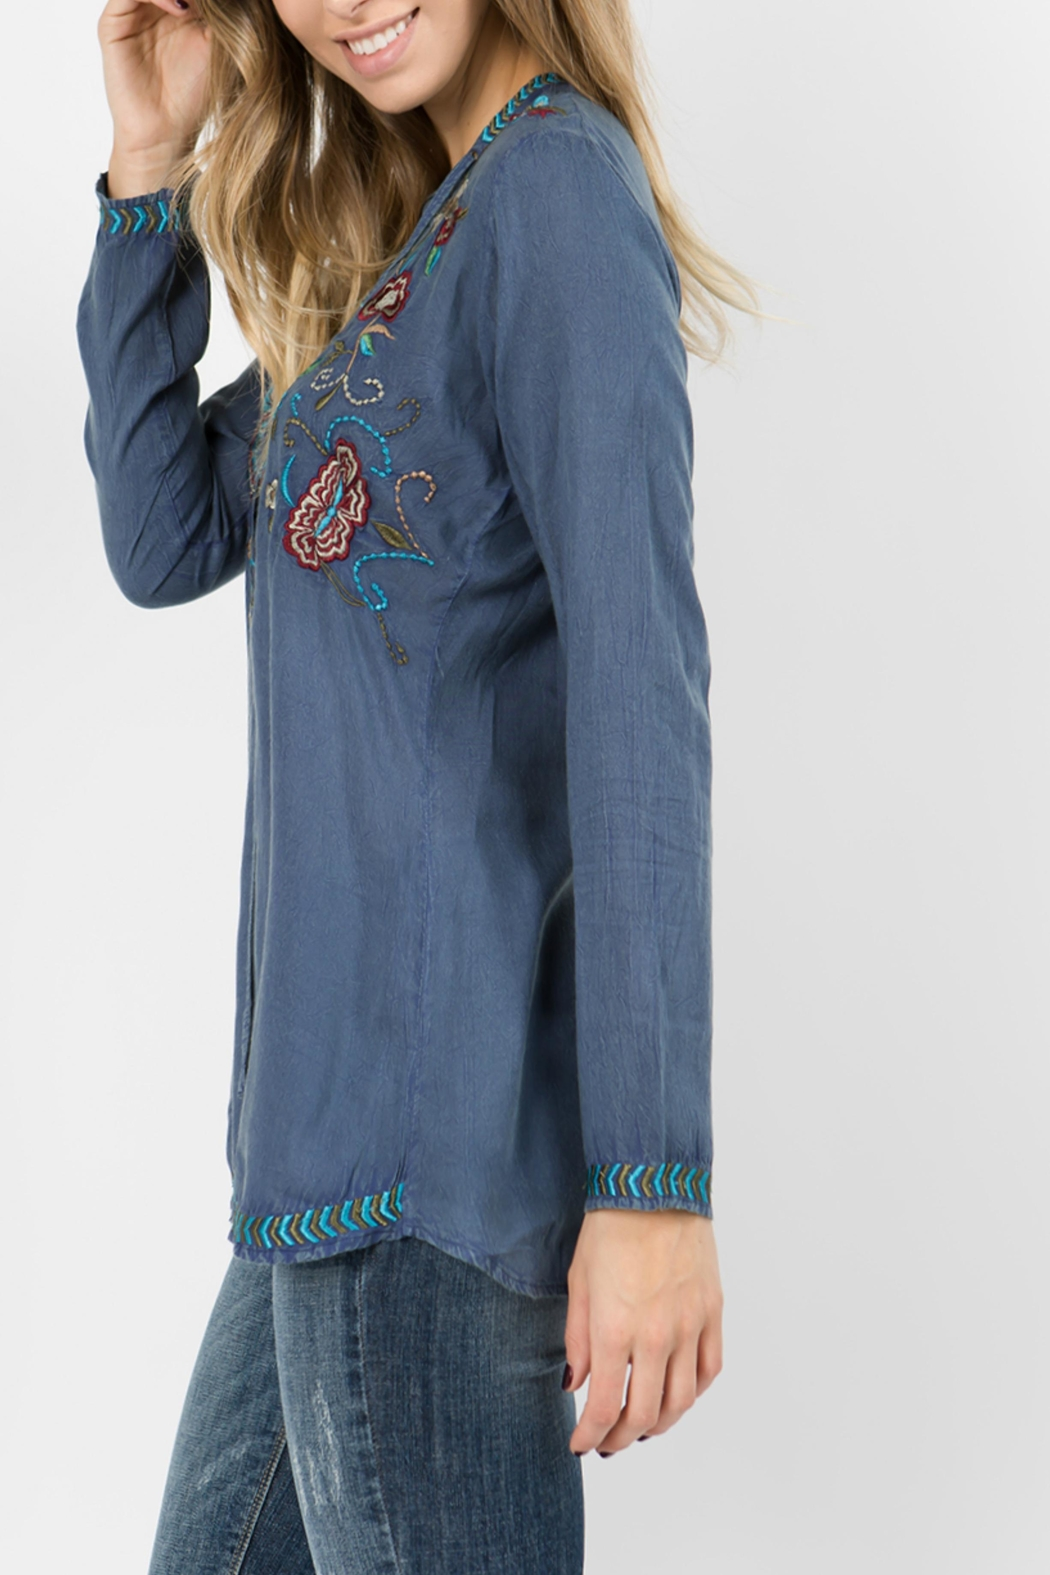 A&A Embroidered Tie Top - Front Full Image